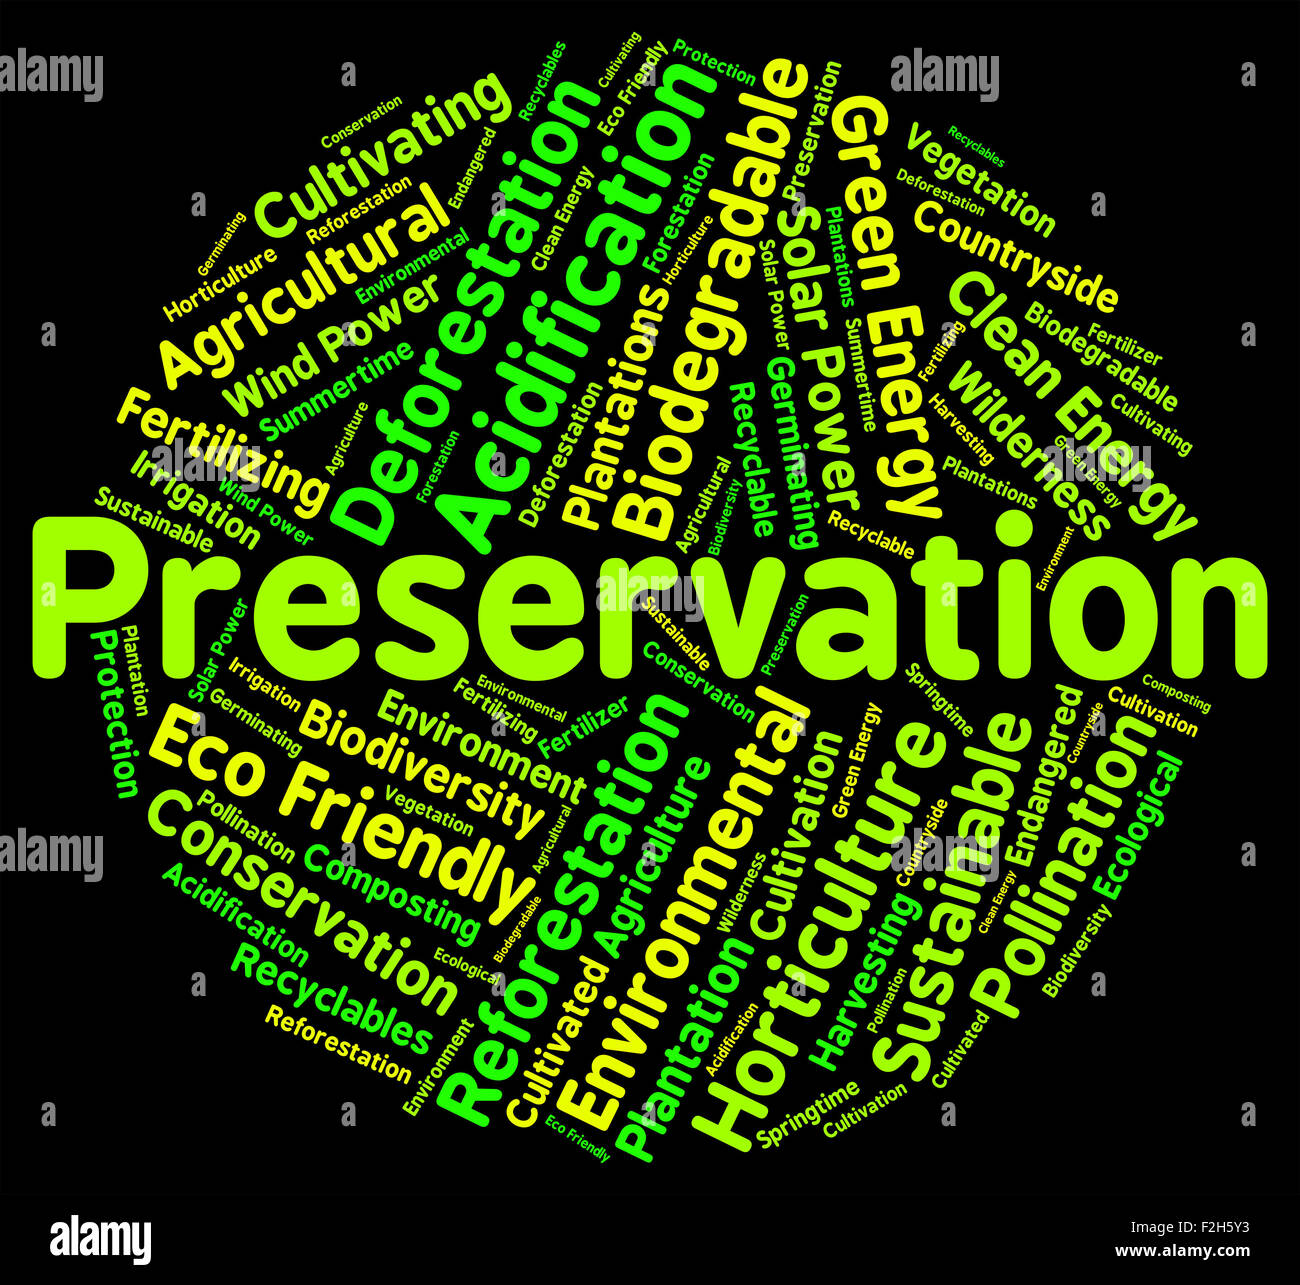 Environmental Conservation Meaning Conserving Stock Photos Preservation Word Meaning Earth Friendly And Environment FHY Environmental Conservation Meaning Conserving